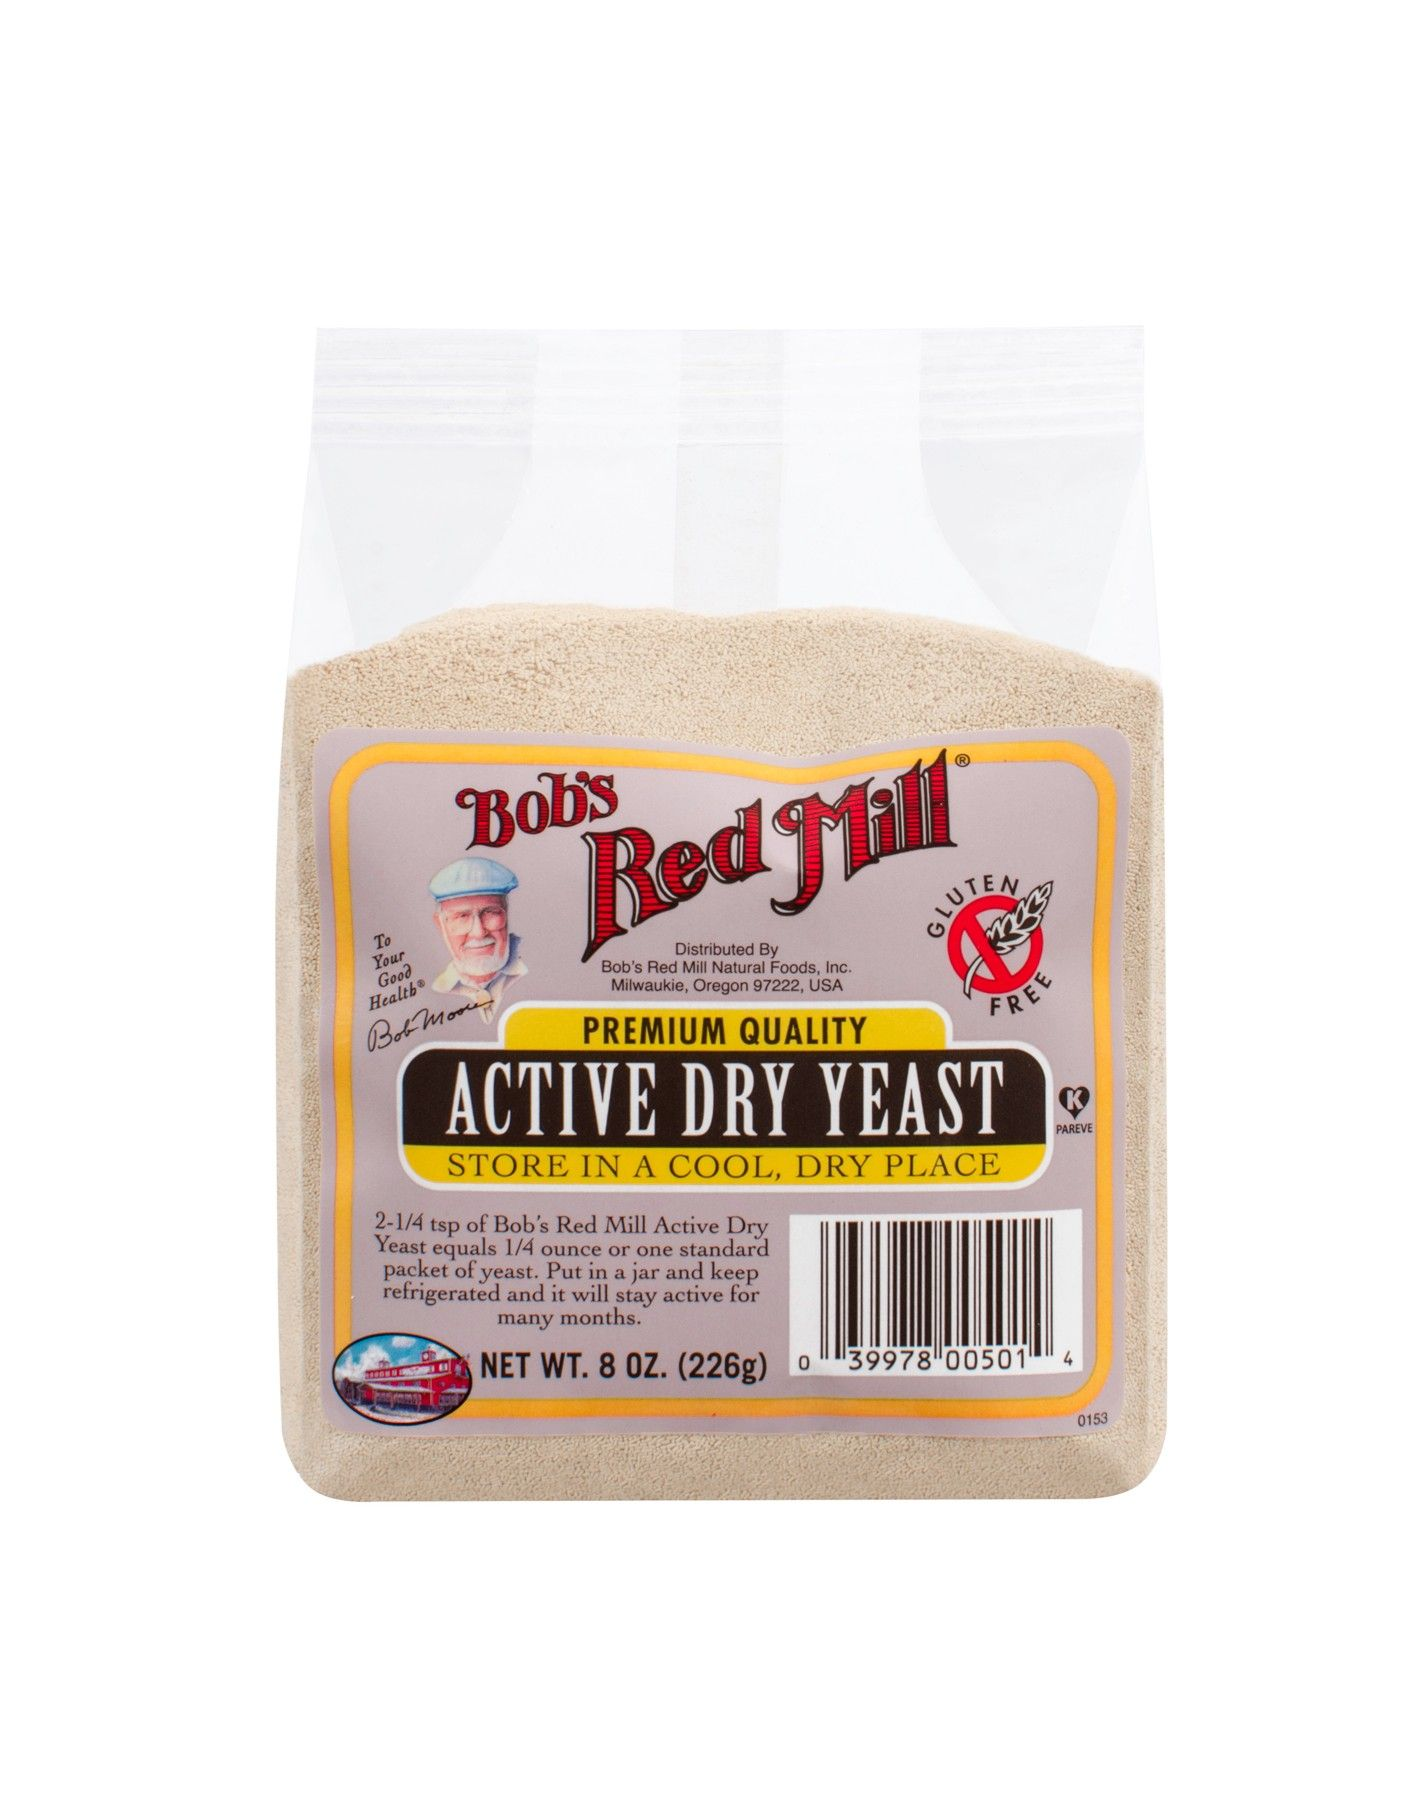 Active dry yeast dry yeast bobs red mill yeast packet